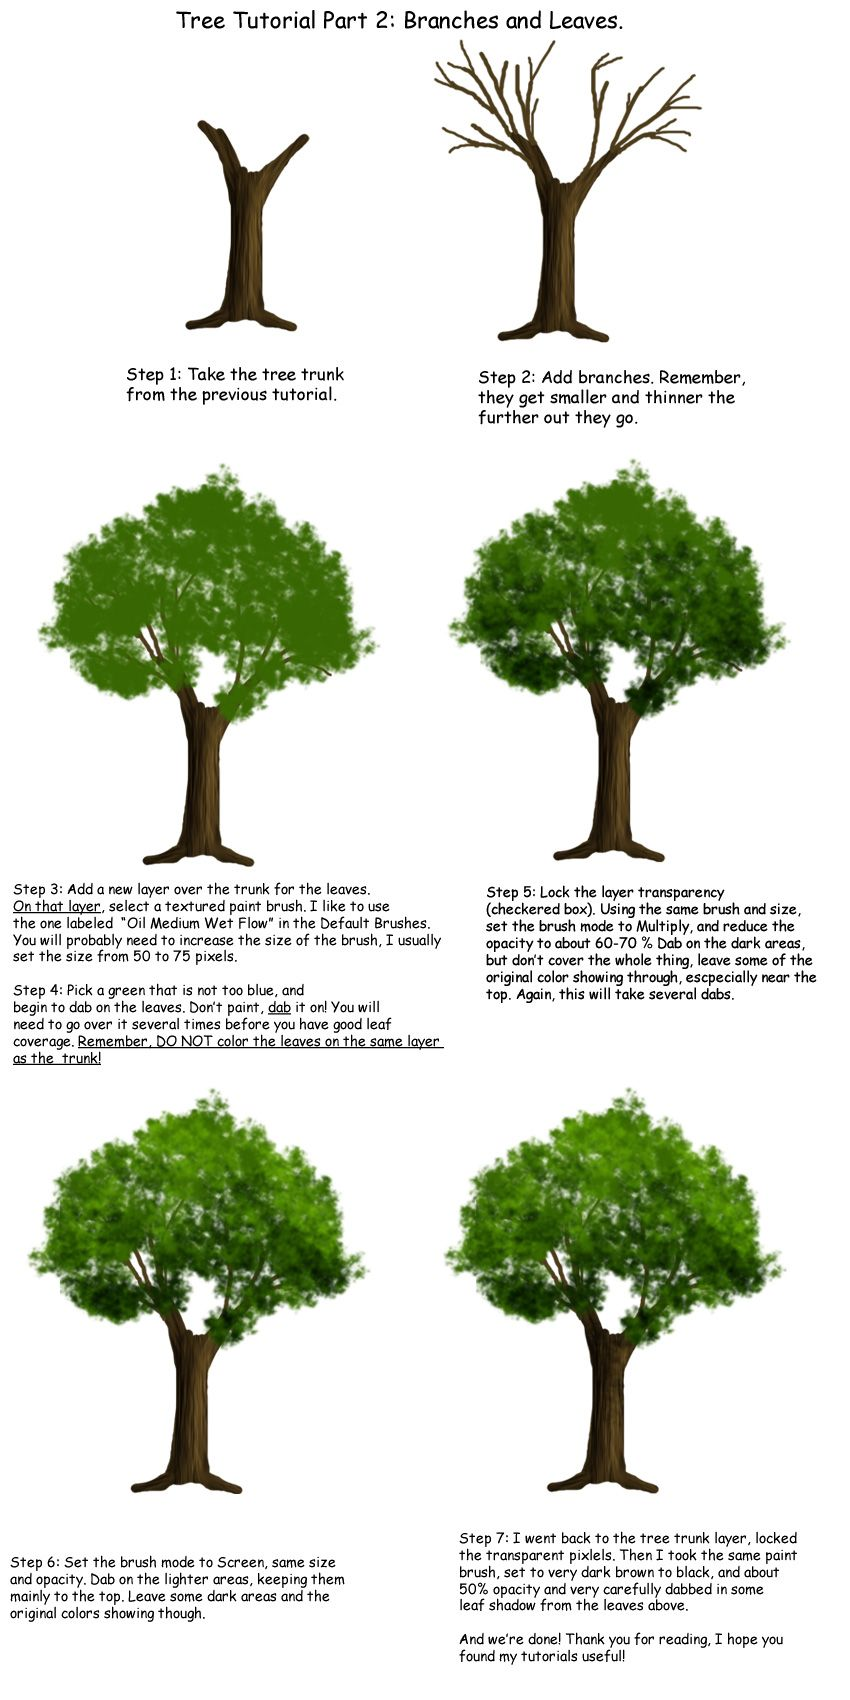 Tree tutorial Part 2 by Tephra76 on DeviantArt | Painting reference ...